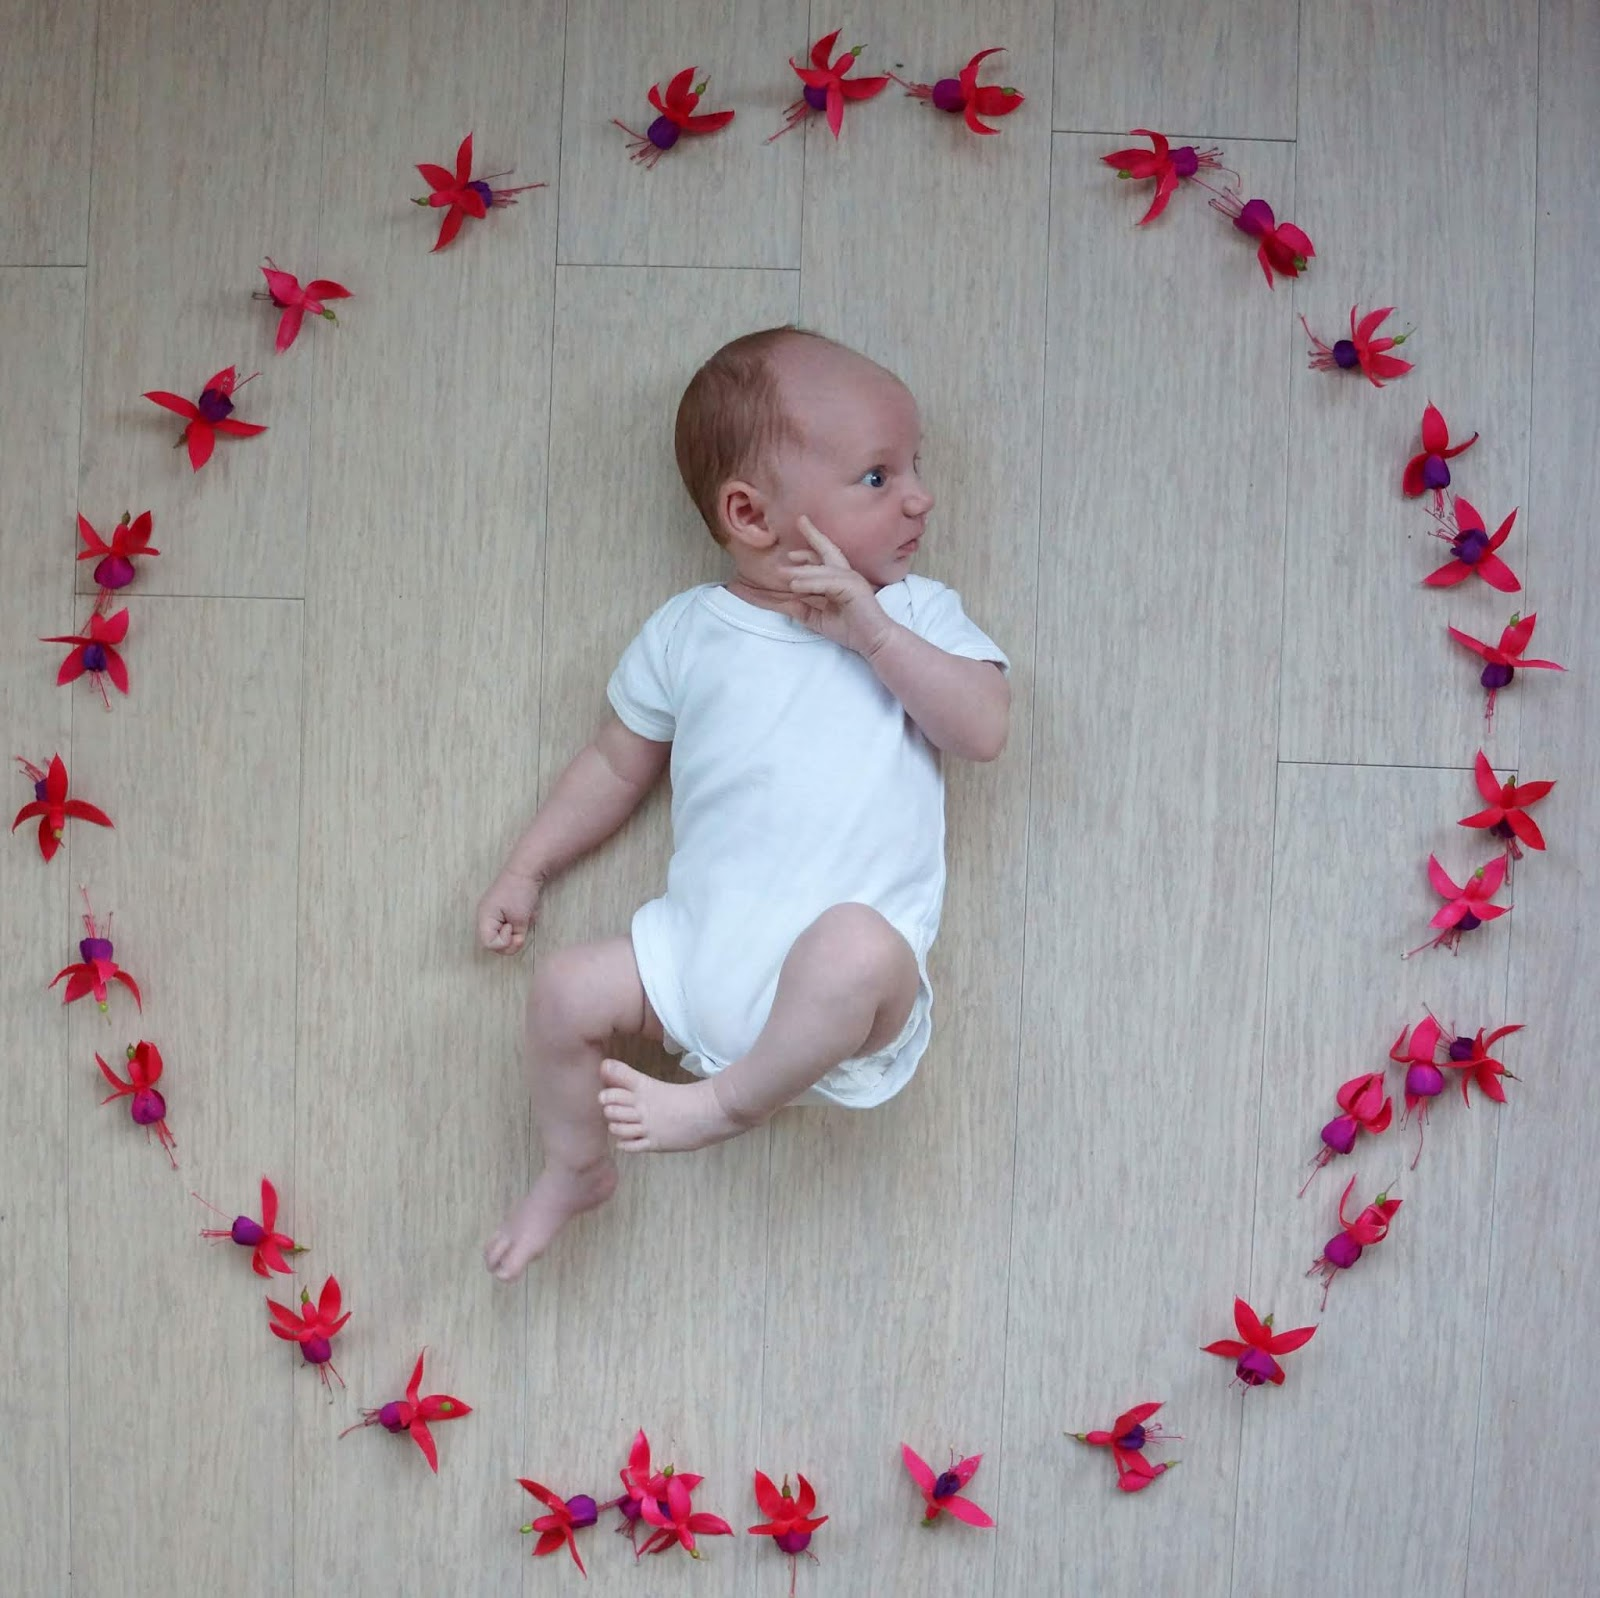 baby in a flower circle